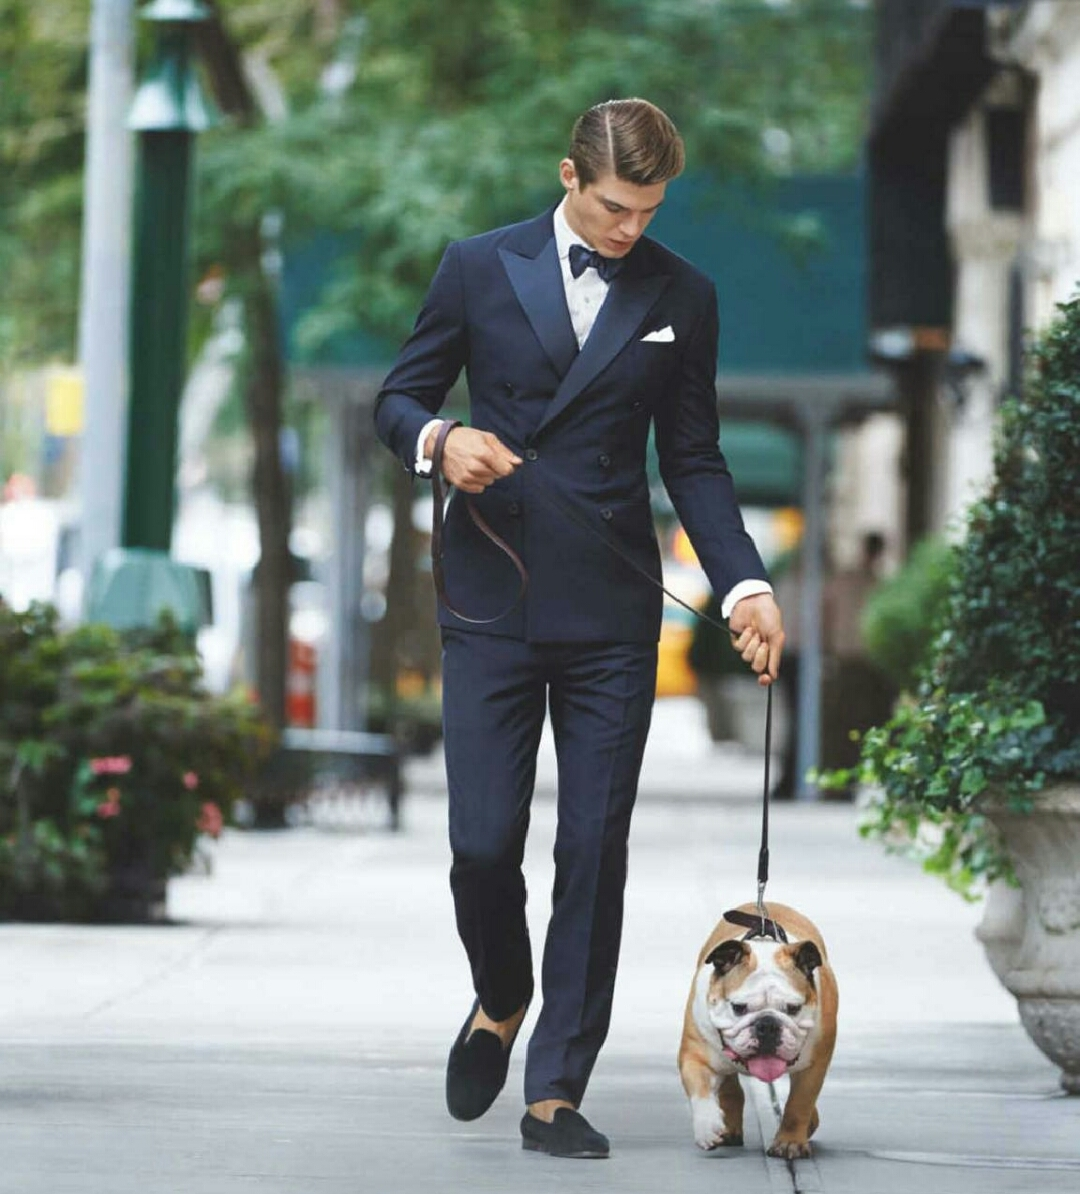 65 WAYS TO BECOME A MODERN GENTLEMAN